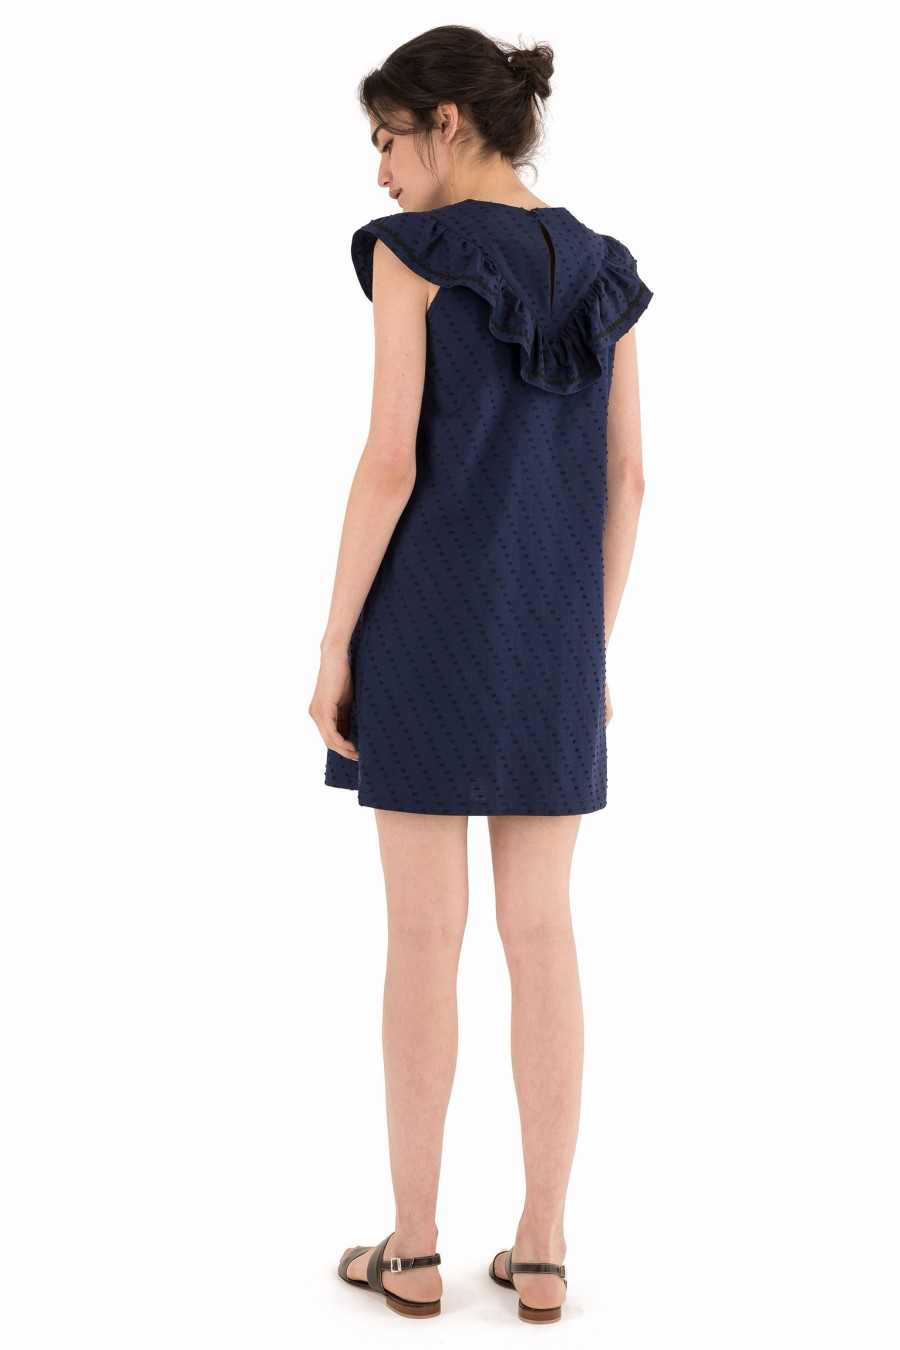 Blue cotton dress with triangle collar